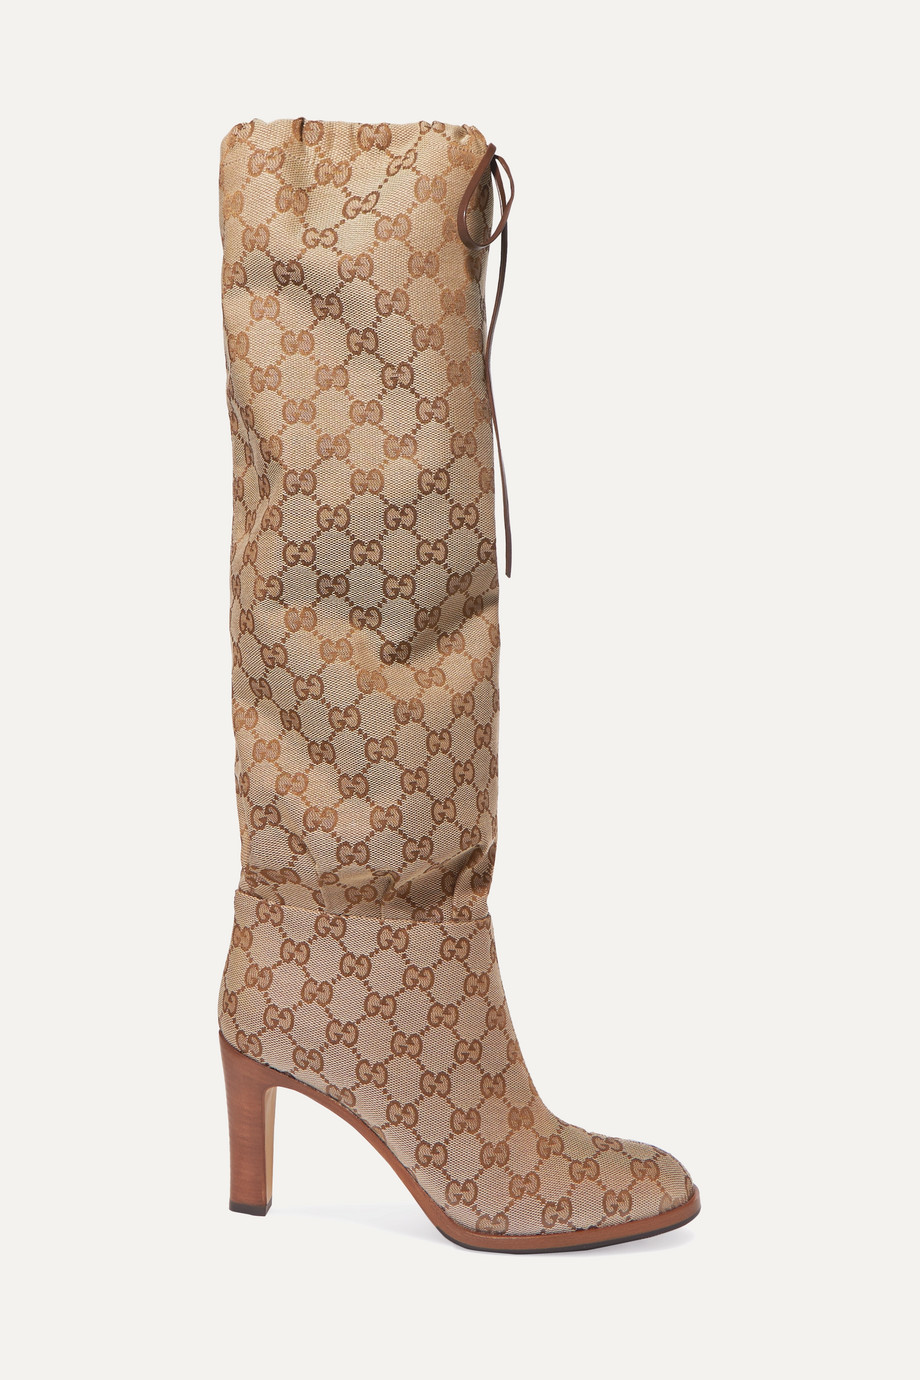 Gucci Leather-trimmed coated-canvas knee boots